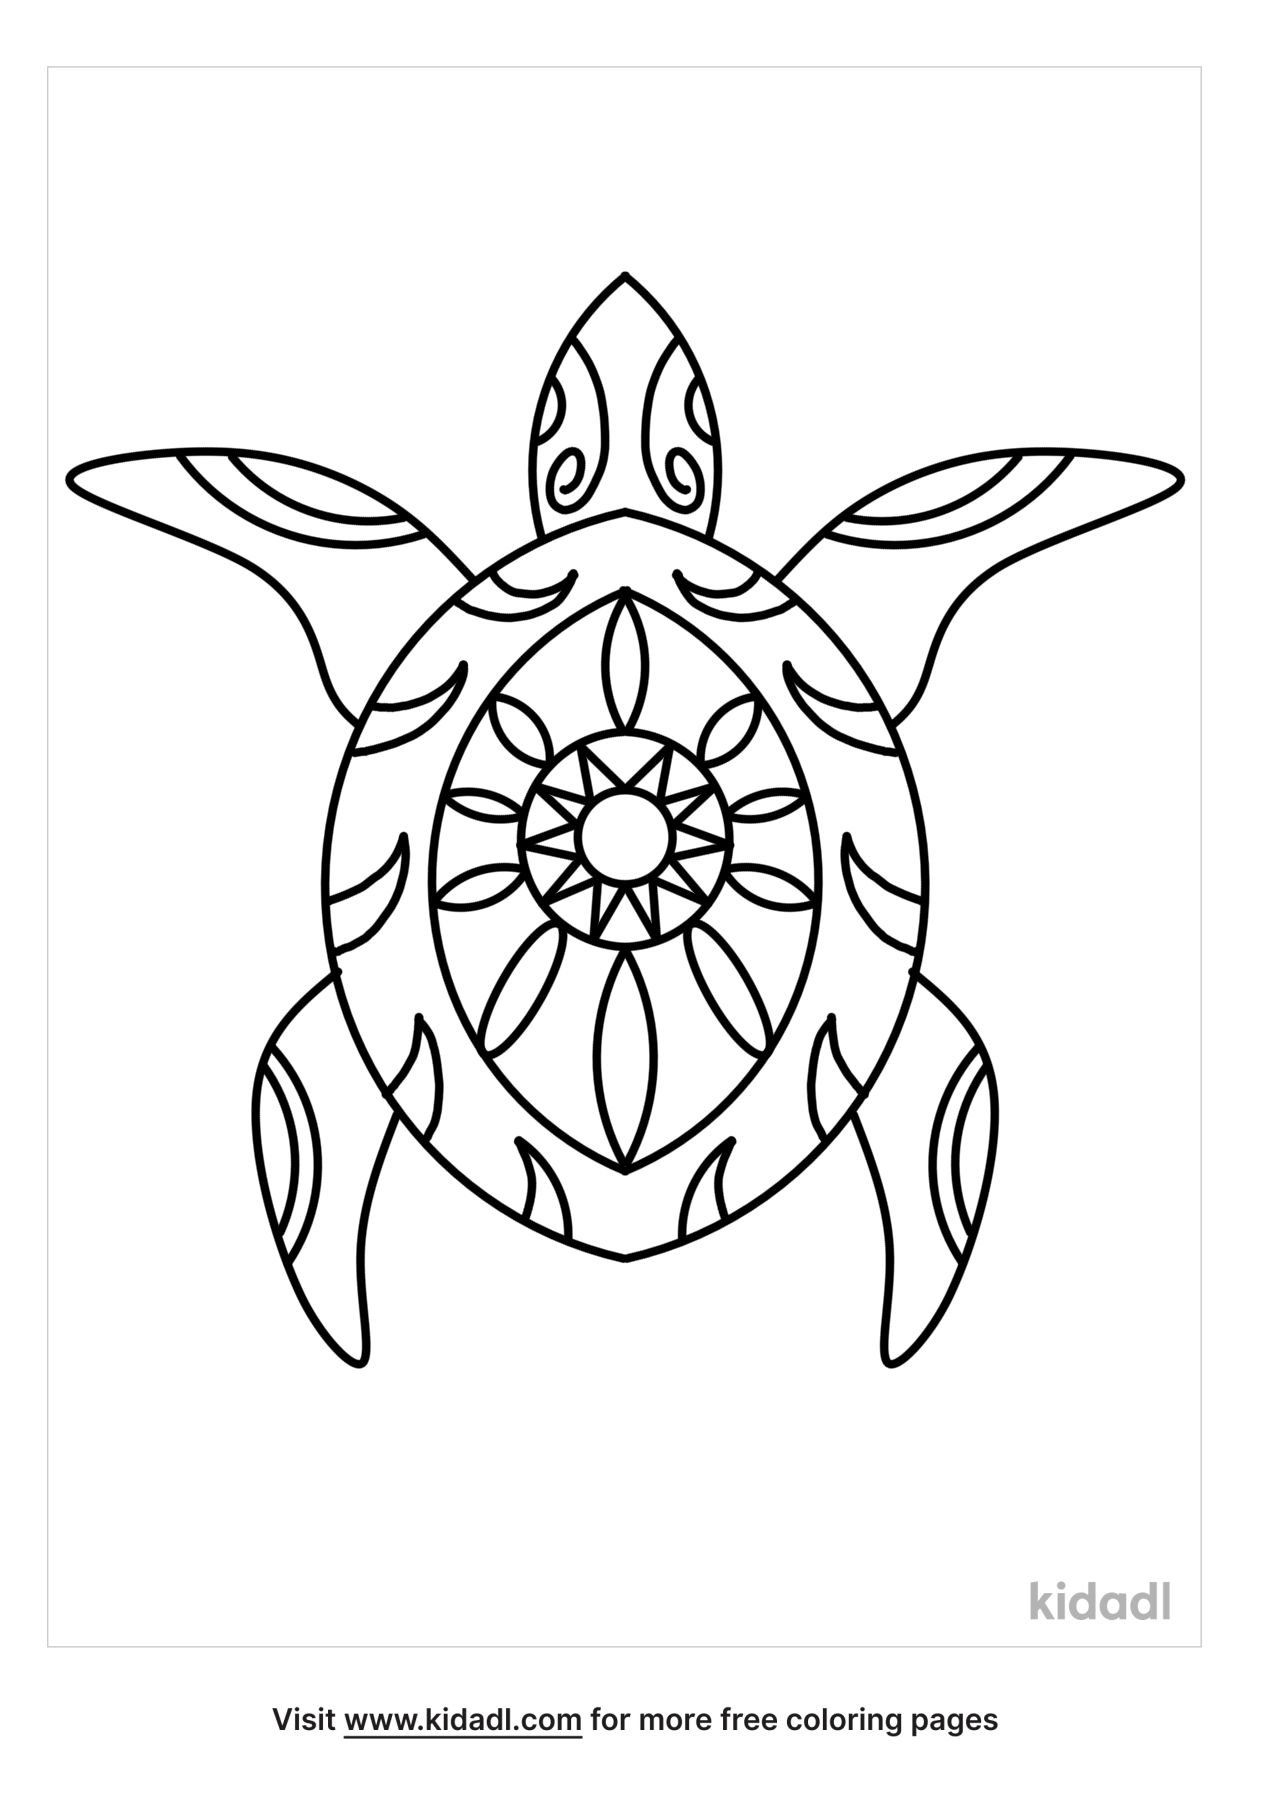 hawaiian turtle coloring free animals kidadl alapbet to numbers hands wreath fall objects coloring pages Hawaiian Coloring Page